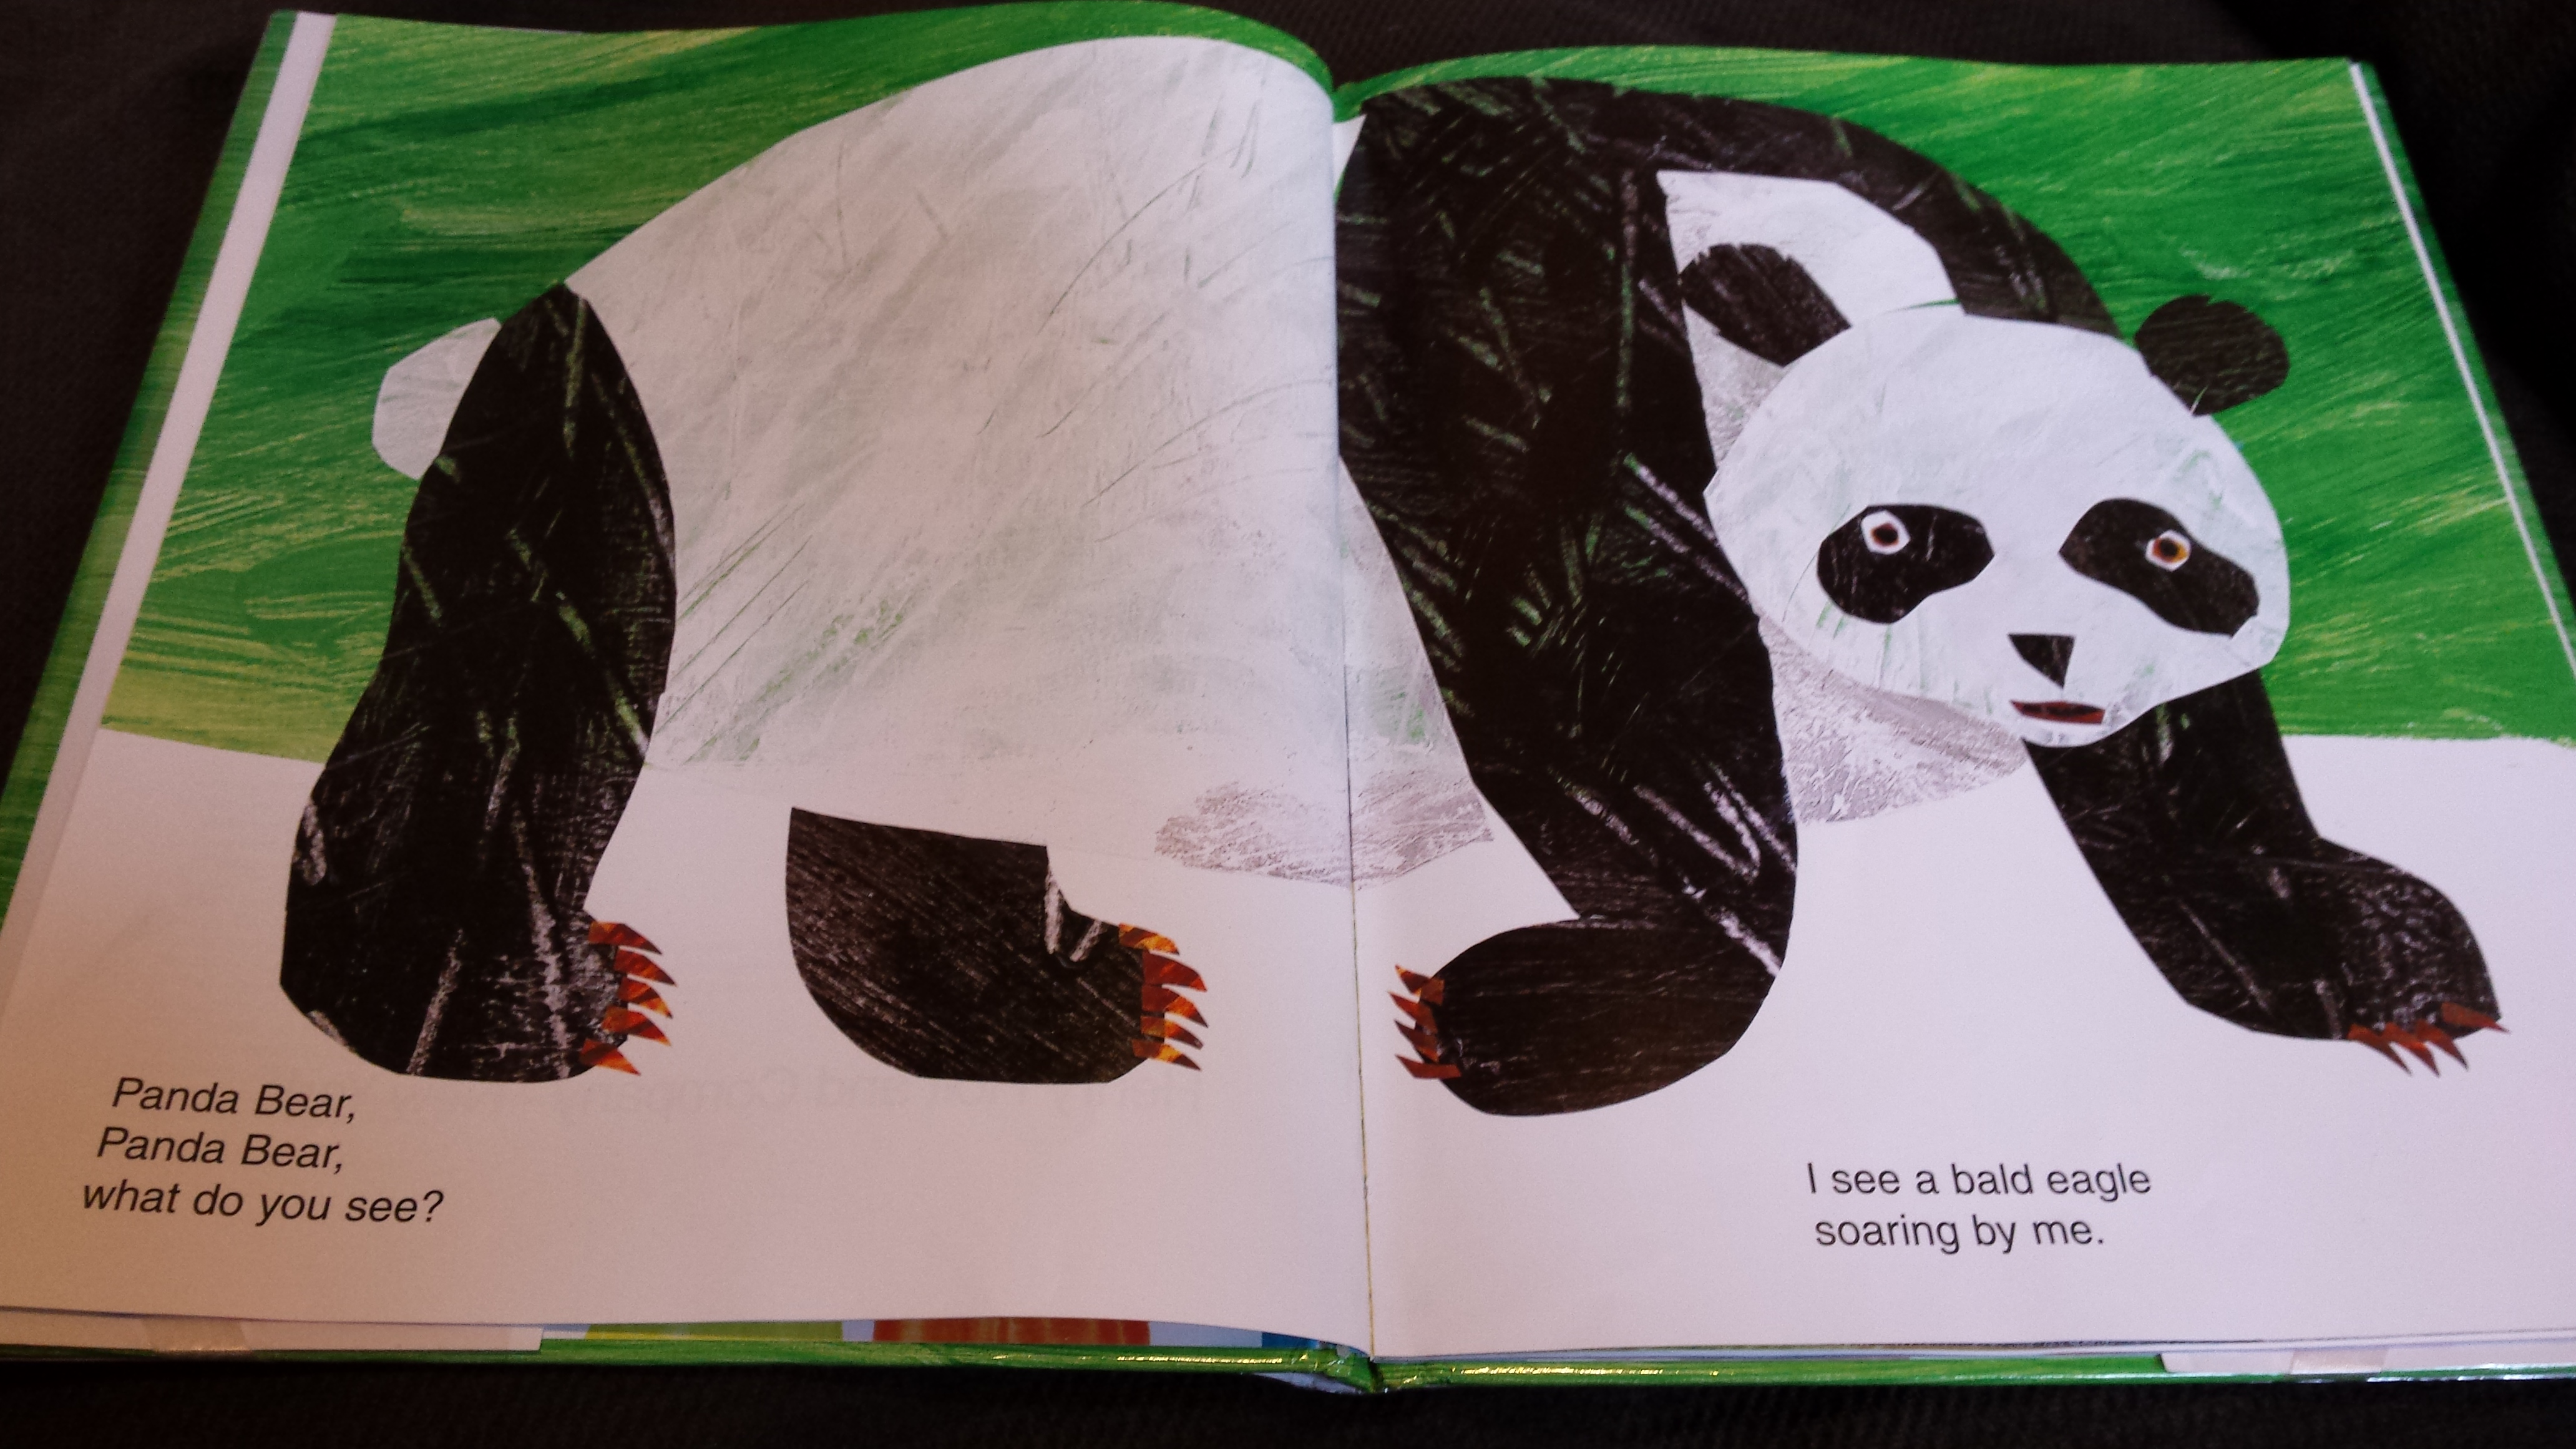 And you will see the panda in this picture